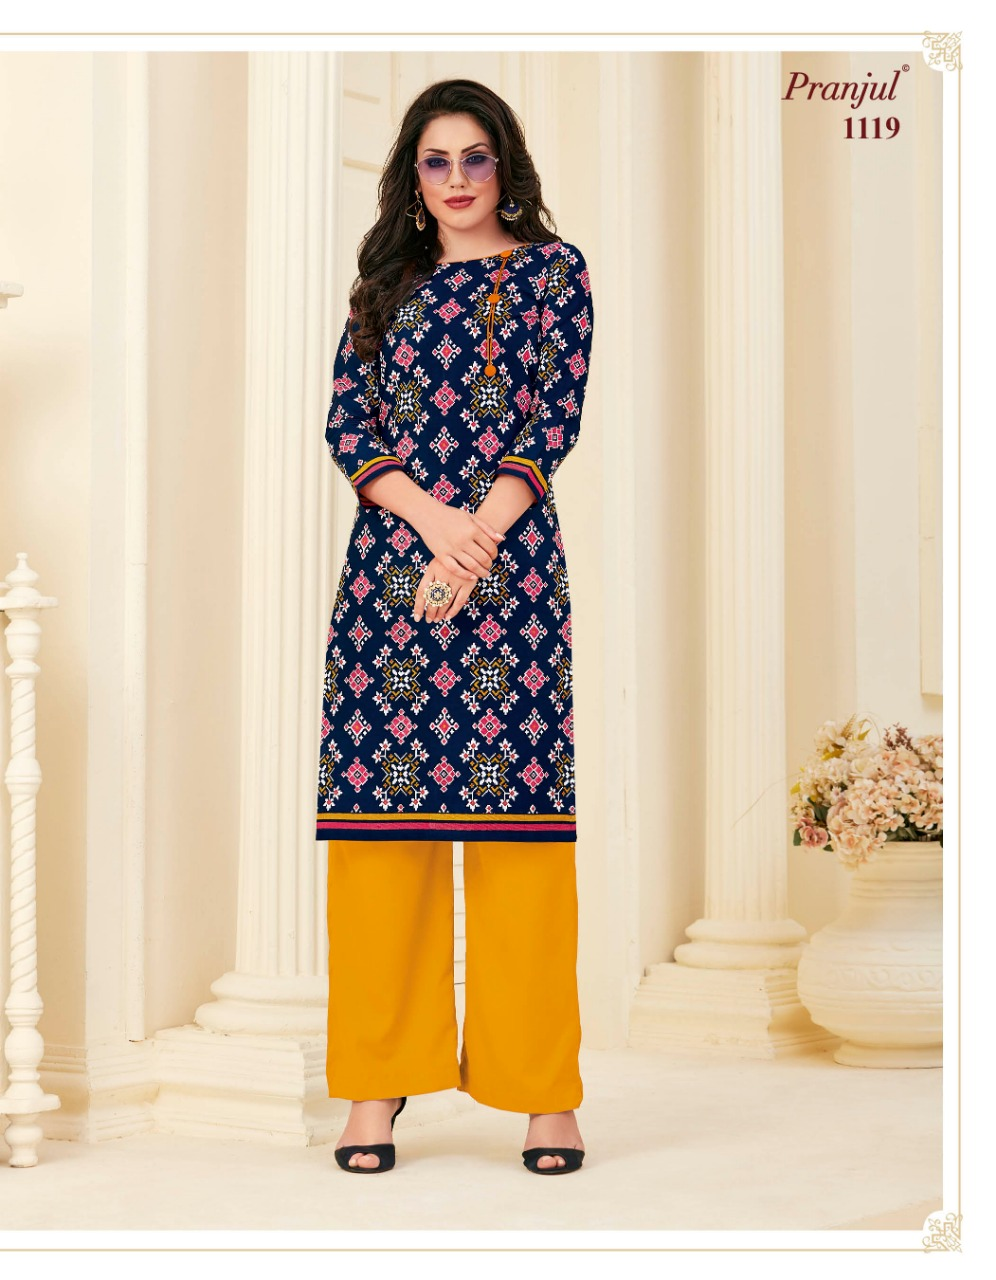 Pranjul Pari Vol 1 Kurti Wholesale Catalog 20 Pcs 1 - Pranjul Pari Vol 1 Kurti Wholesale Catalog 20 Pcs